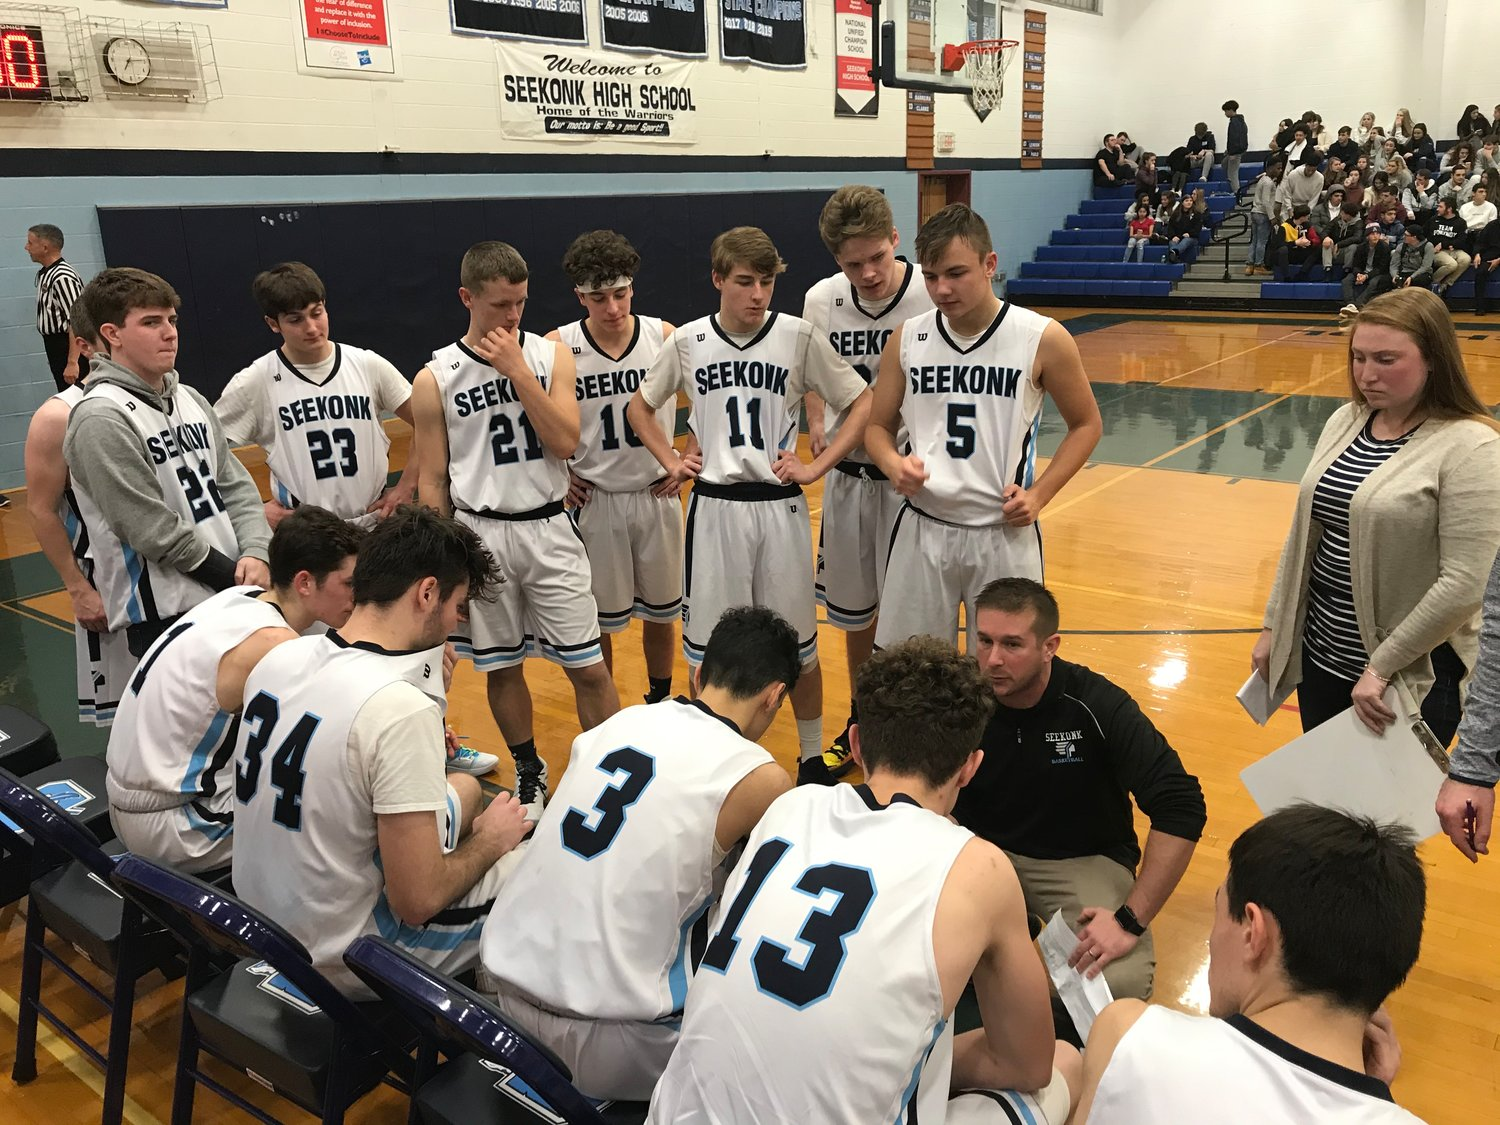 Seekonk boys basketball coach Alex DaLuz talks to the Warriors during a timeout against Blackstone Valley.